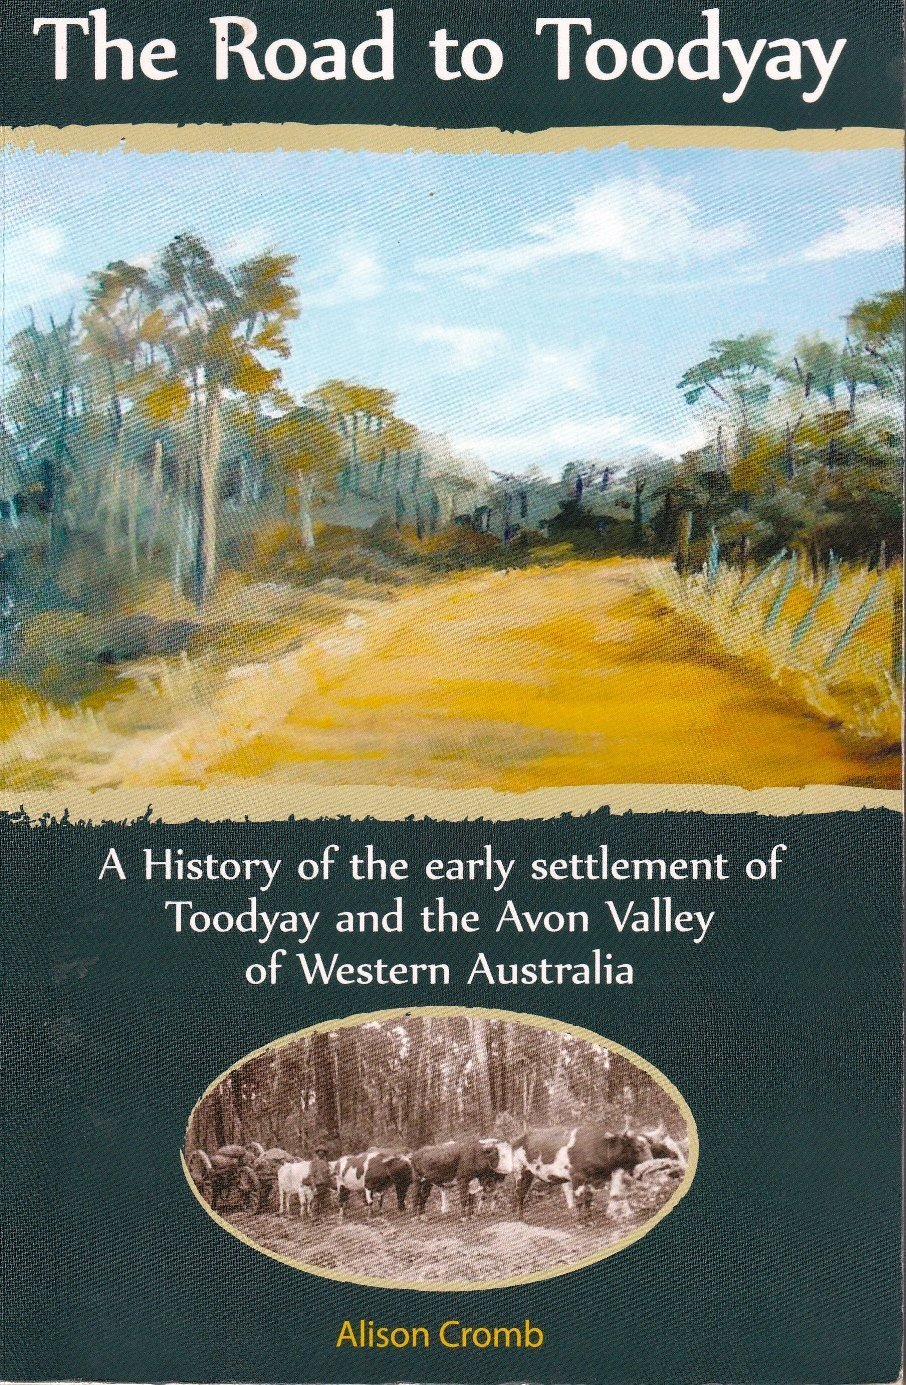 The road to Toodyay: a history of the early settlement of Toodyay and the Avon Valley of Western Australia